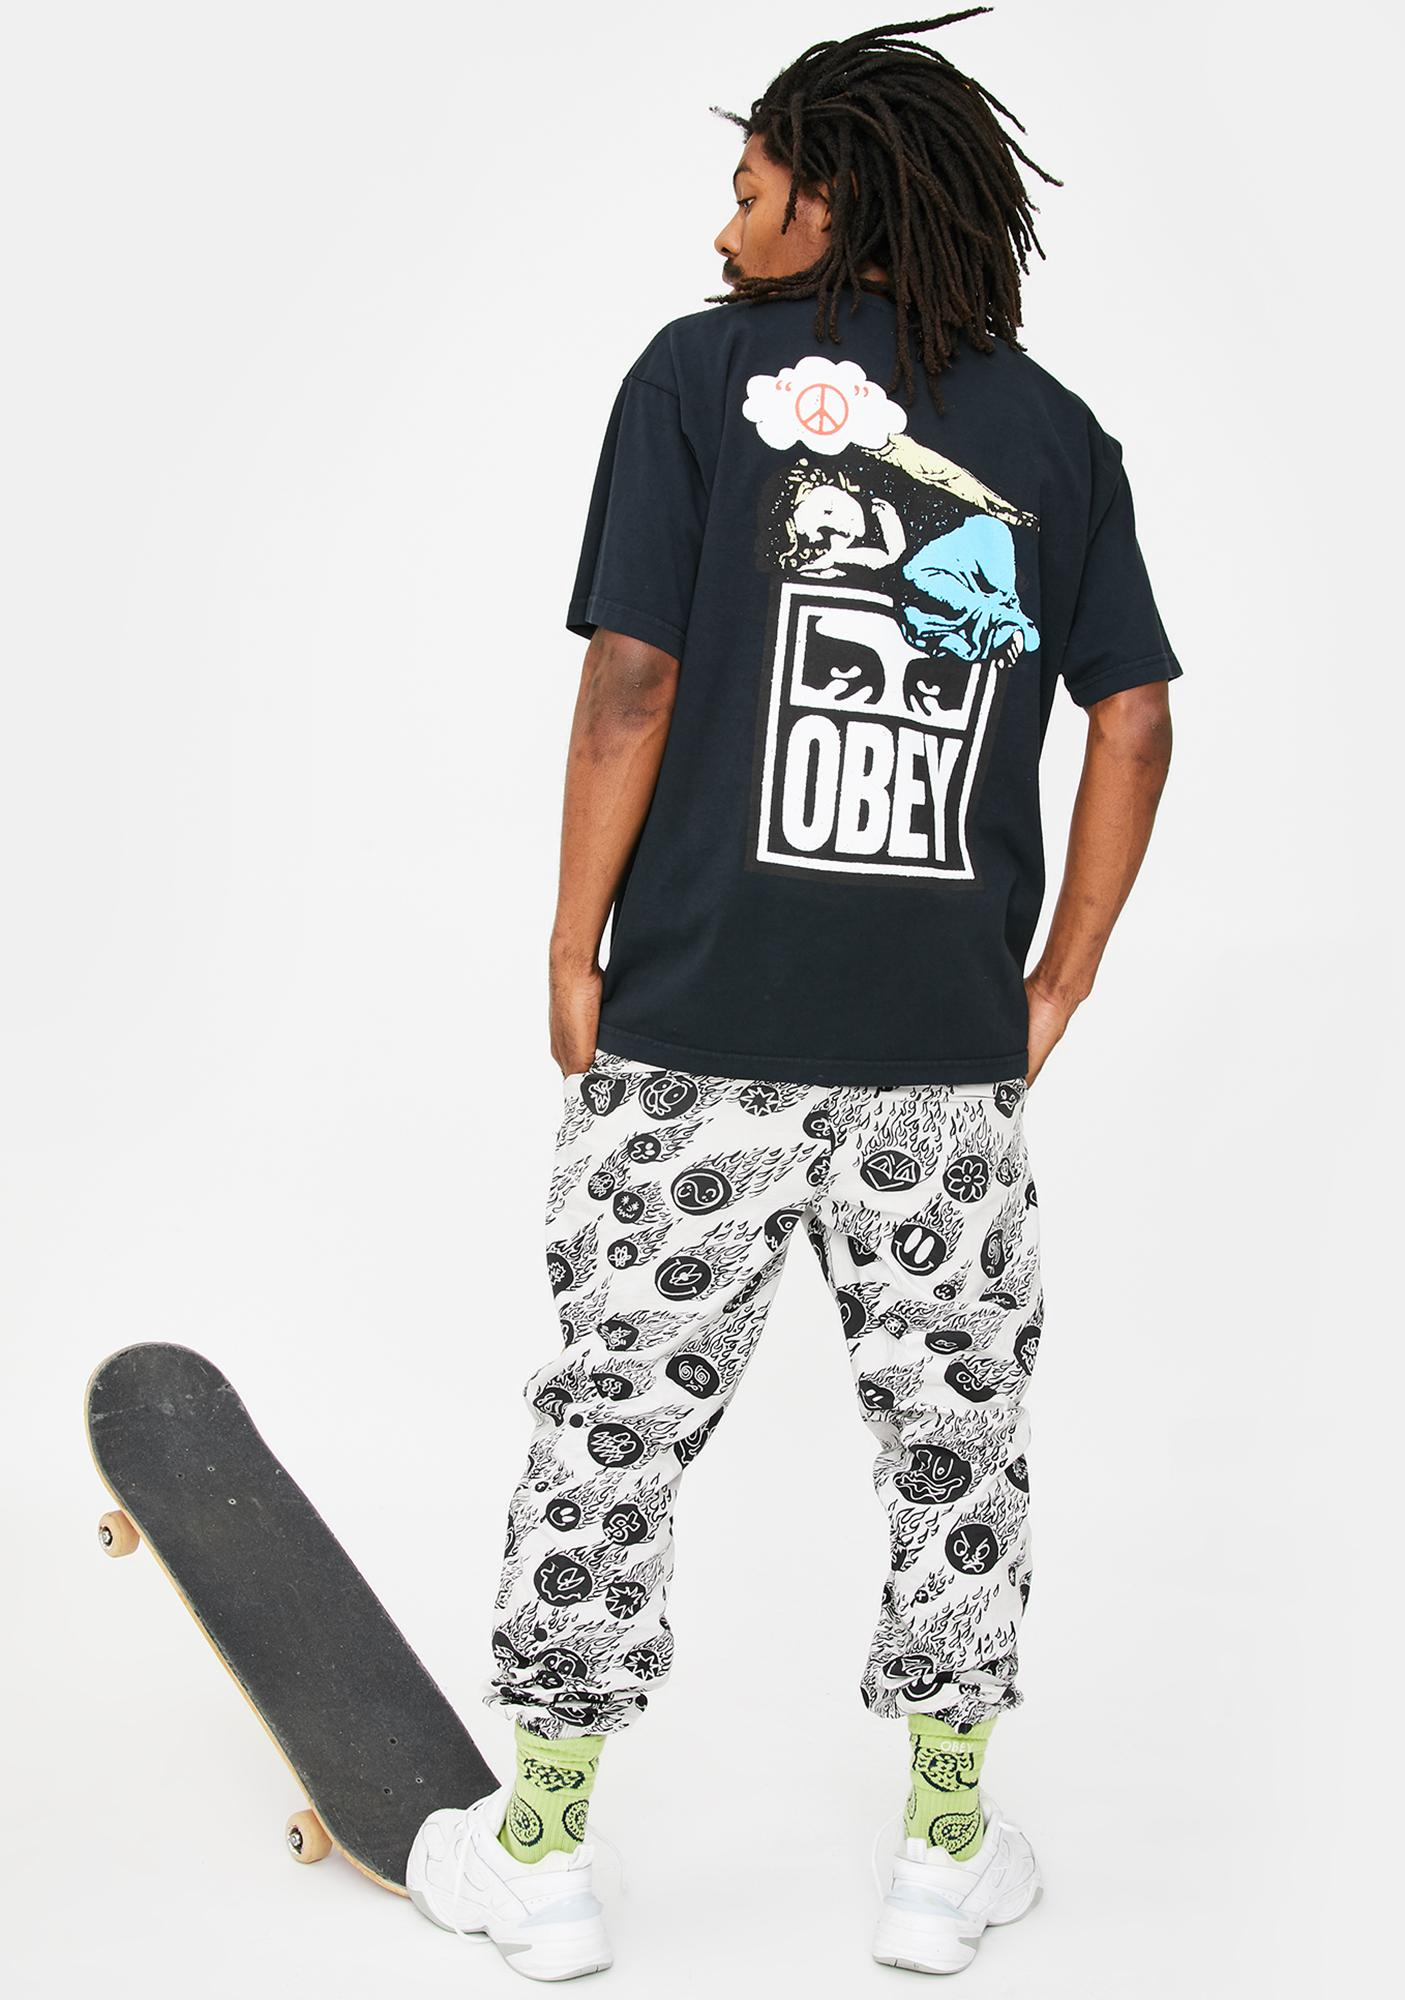 Obey Angel Graphic Tee